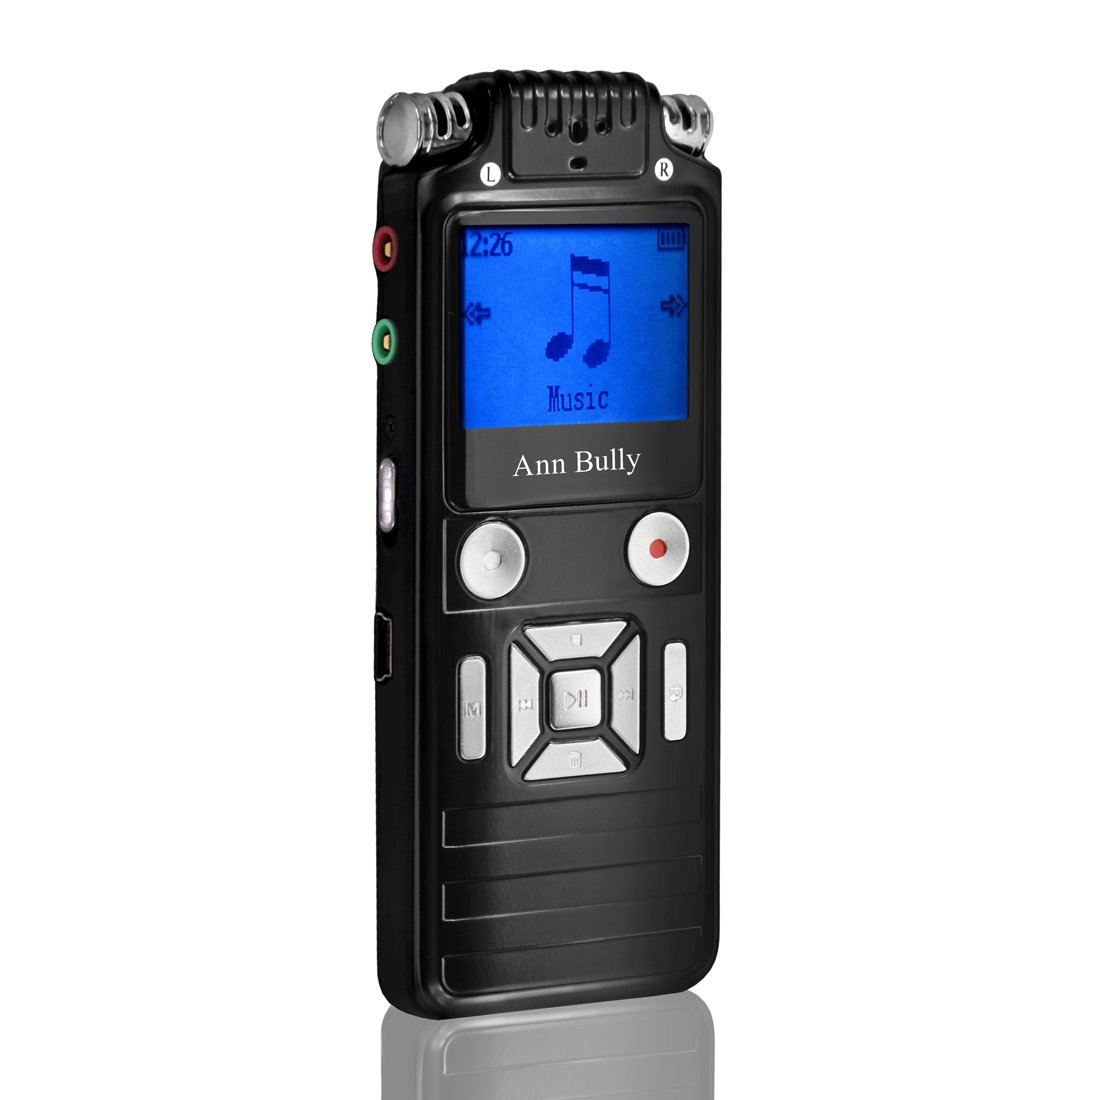 Digital Voice Recorder,Ultra-Slim 8GB Rechargeable Sound Audio Recorder Dictaphone with Voice Activated,Double Microphone,Metal Casing,Auto Recording,Mini MP3 for Meetings Lectures Interviews